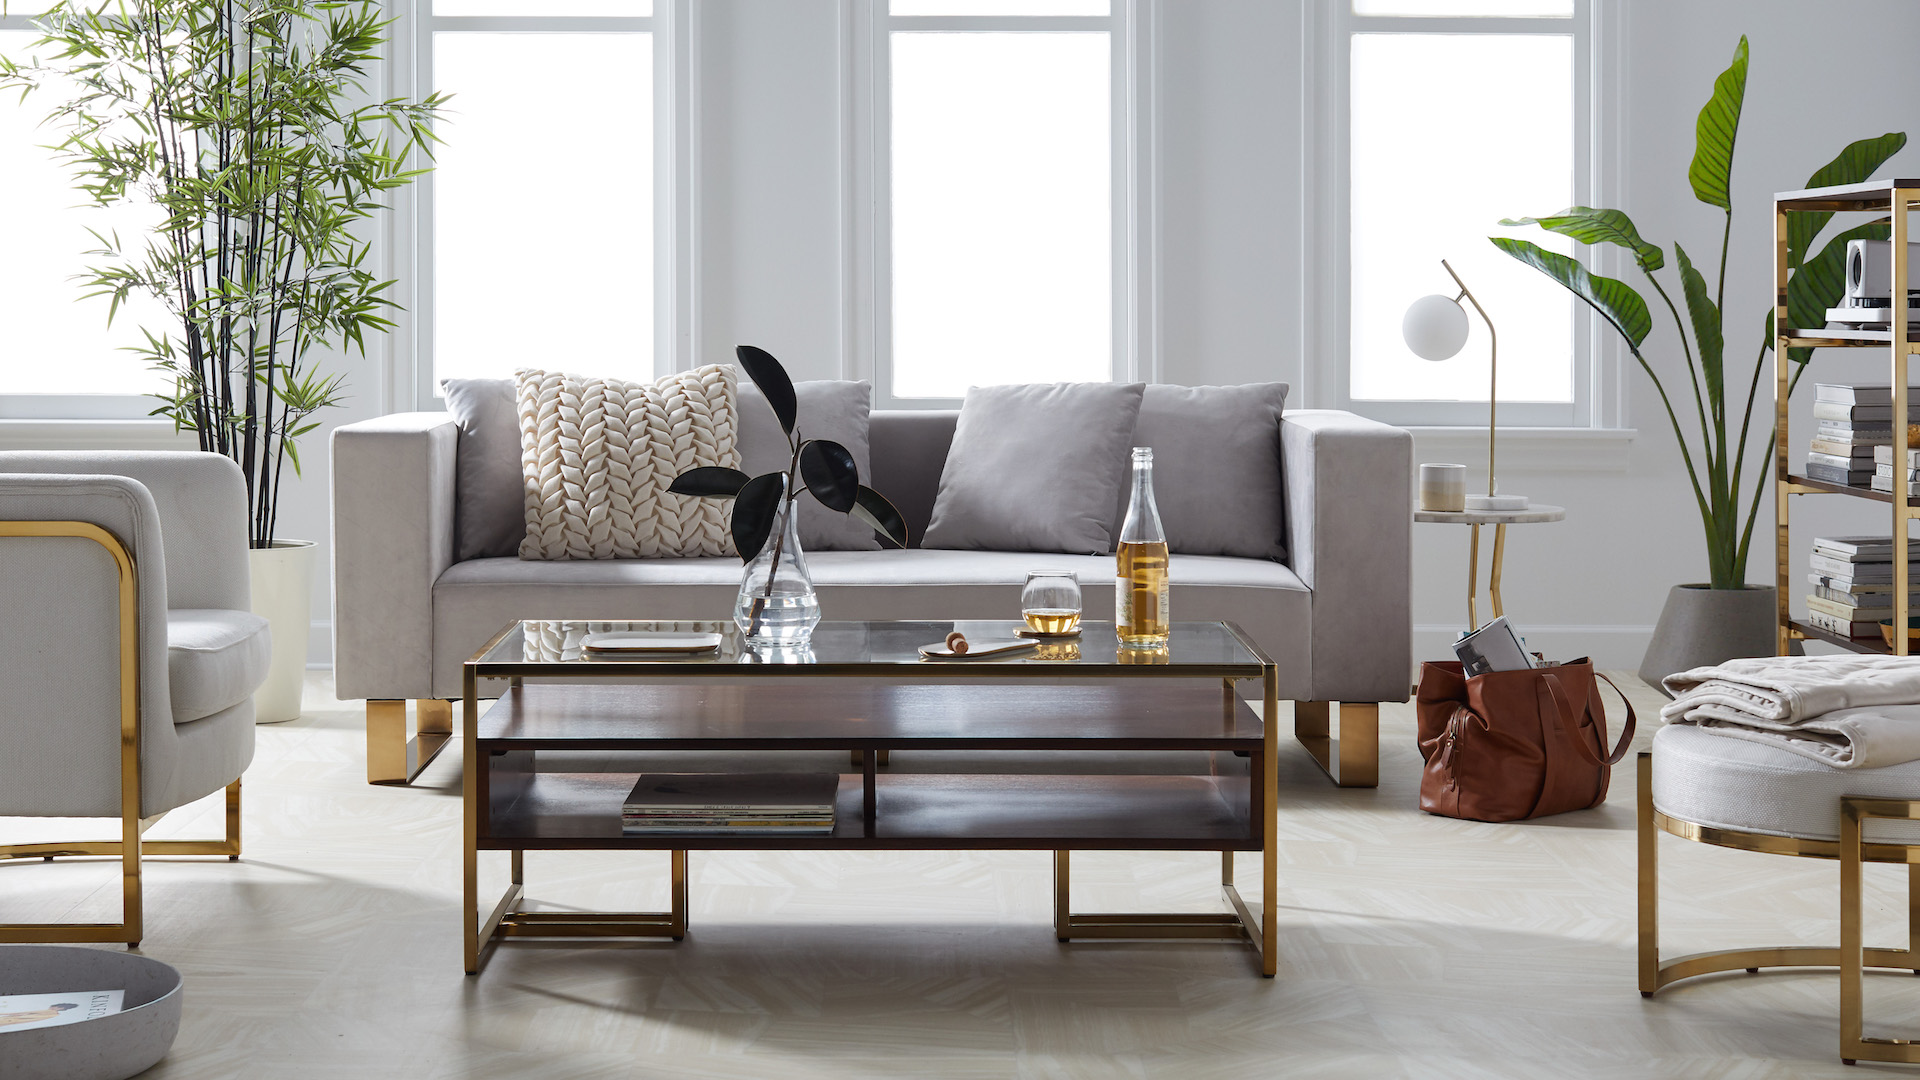 Walmart Dropped A New Home Decor Line Thats Ridiculously Stylish Affordable